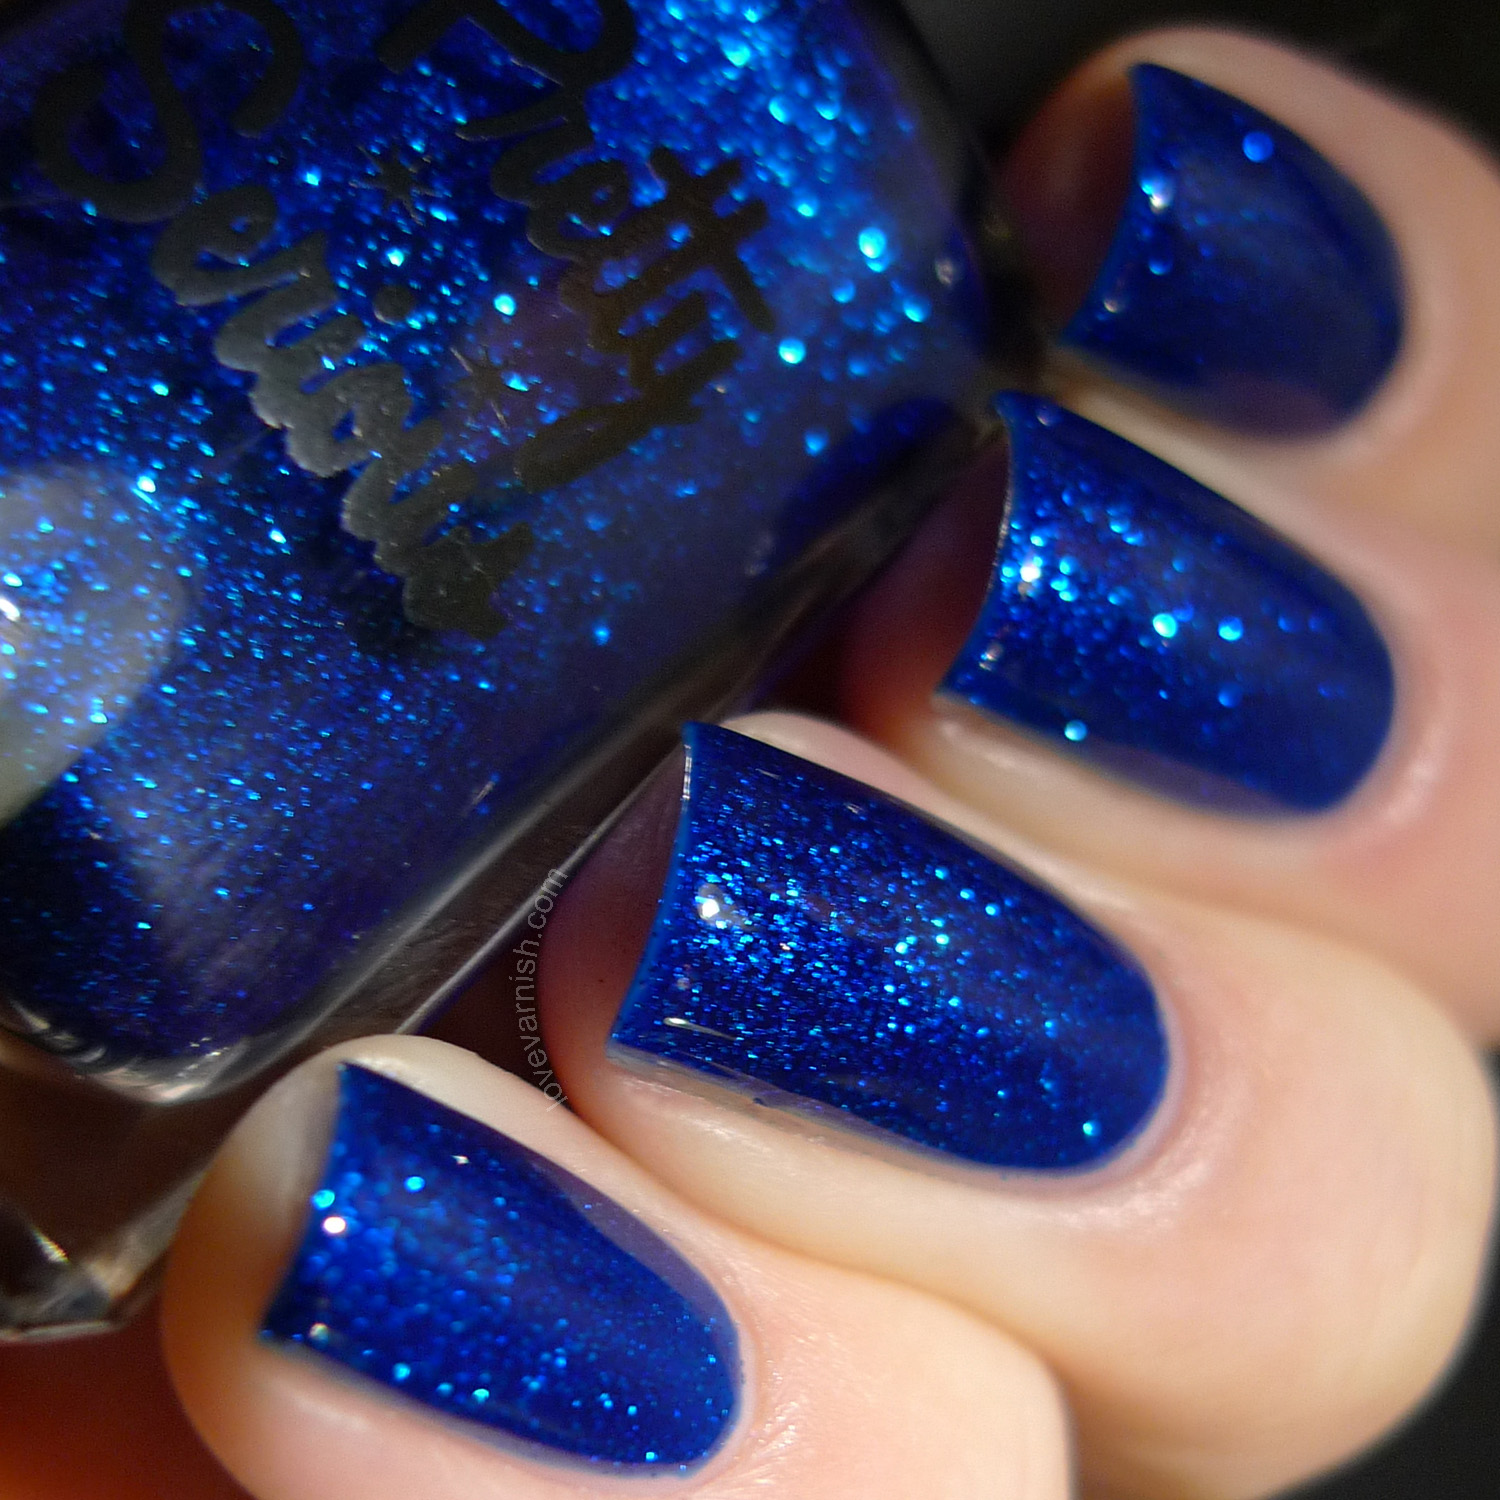 Pretty Serious Cosmetics BSOD blue jelly glitter polish